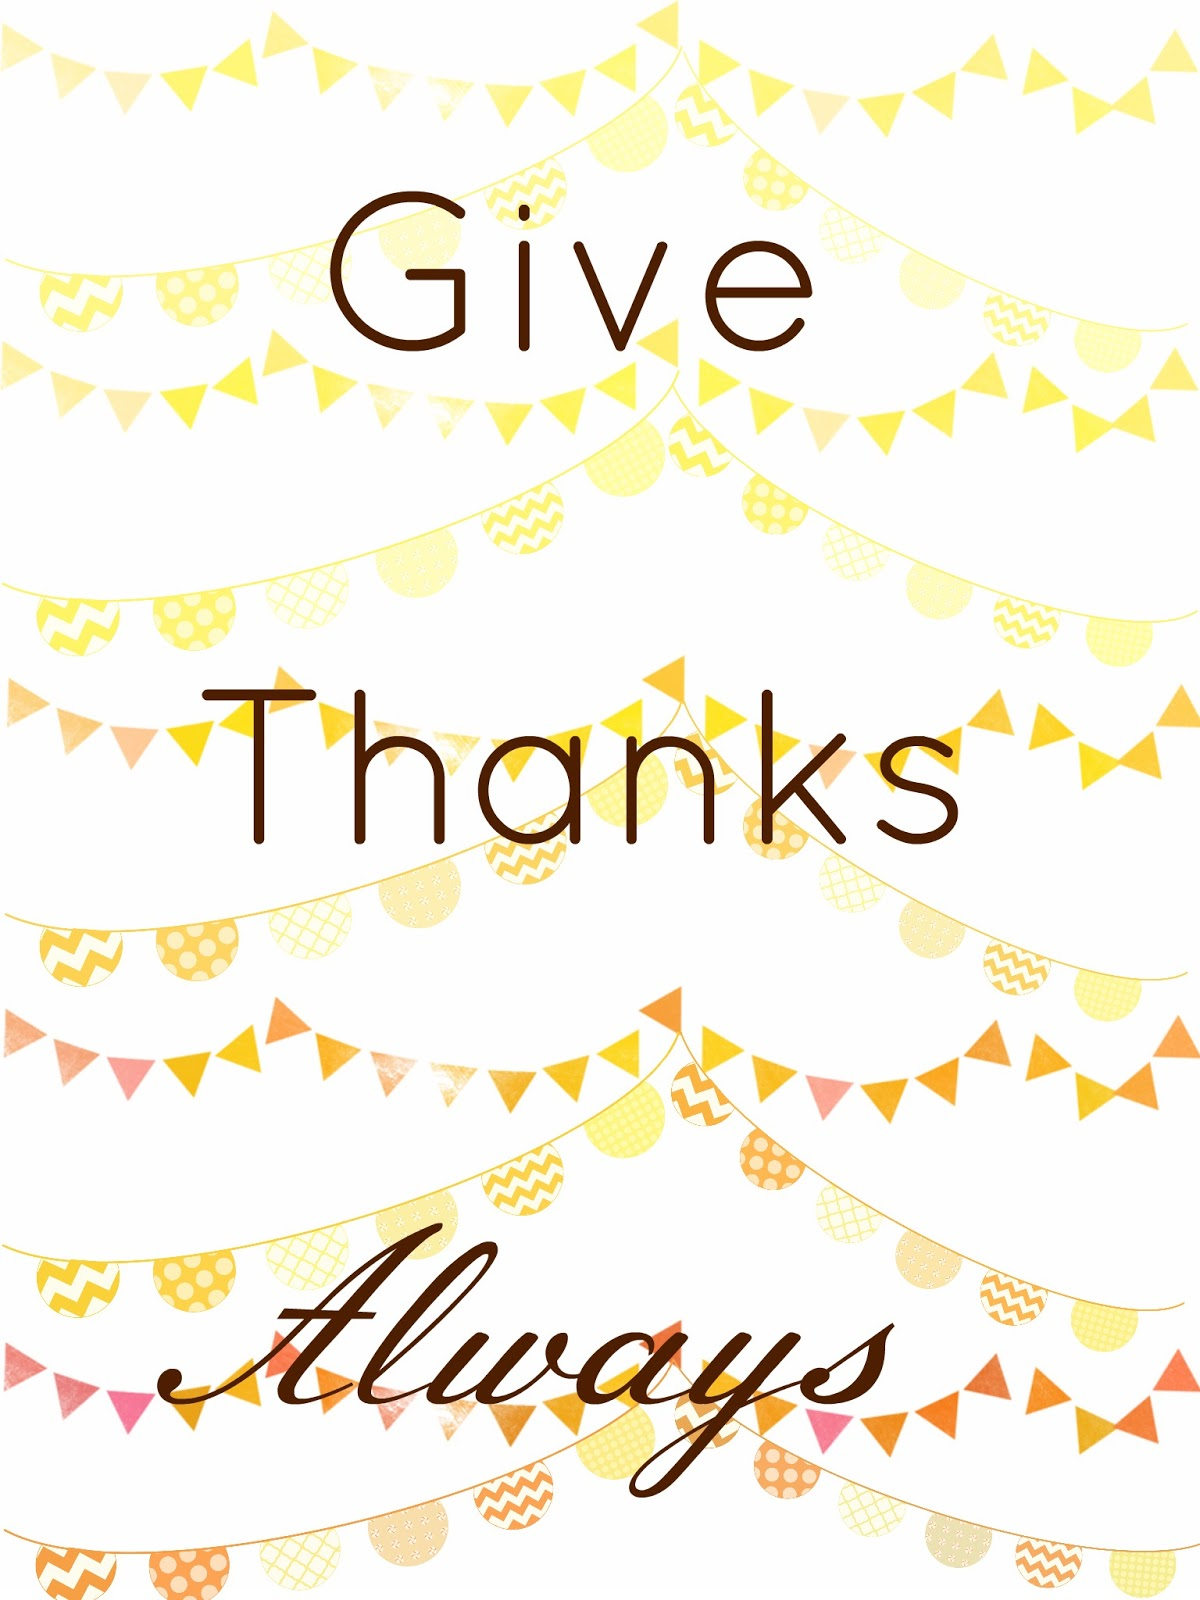 photo relating to Give Thanks Printable known as Deliver due printable - The Female Innovative